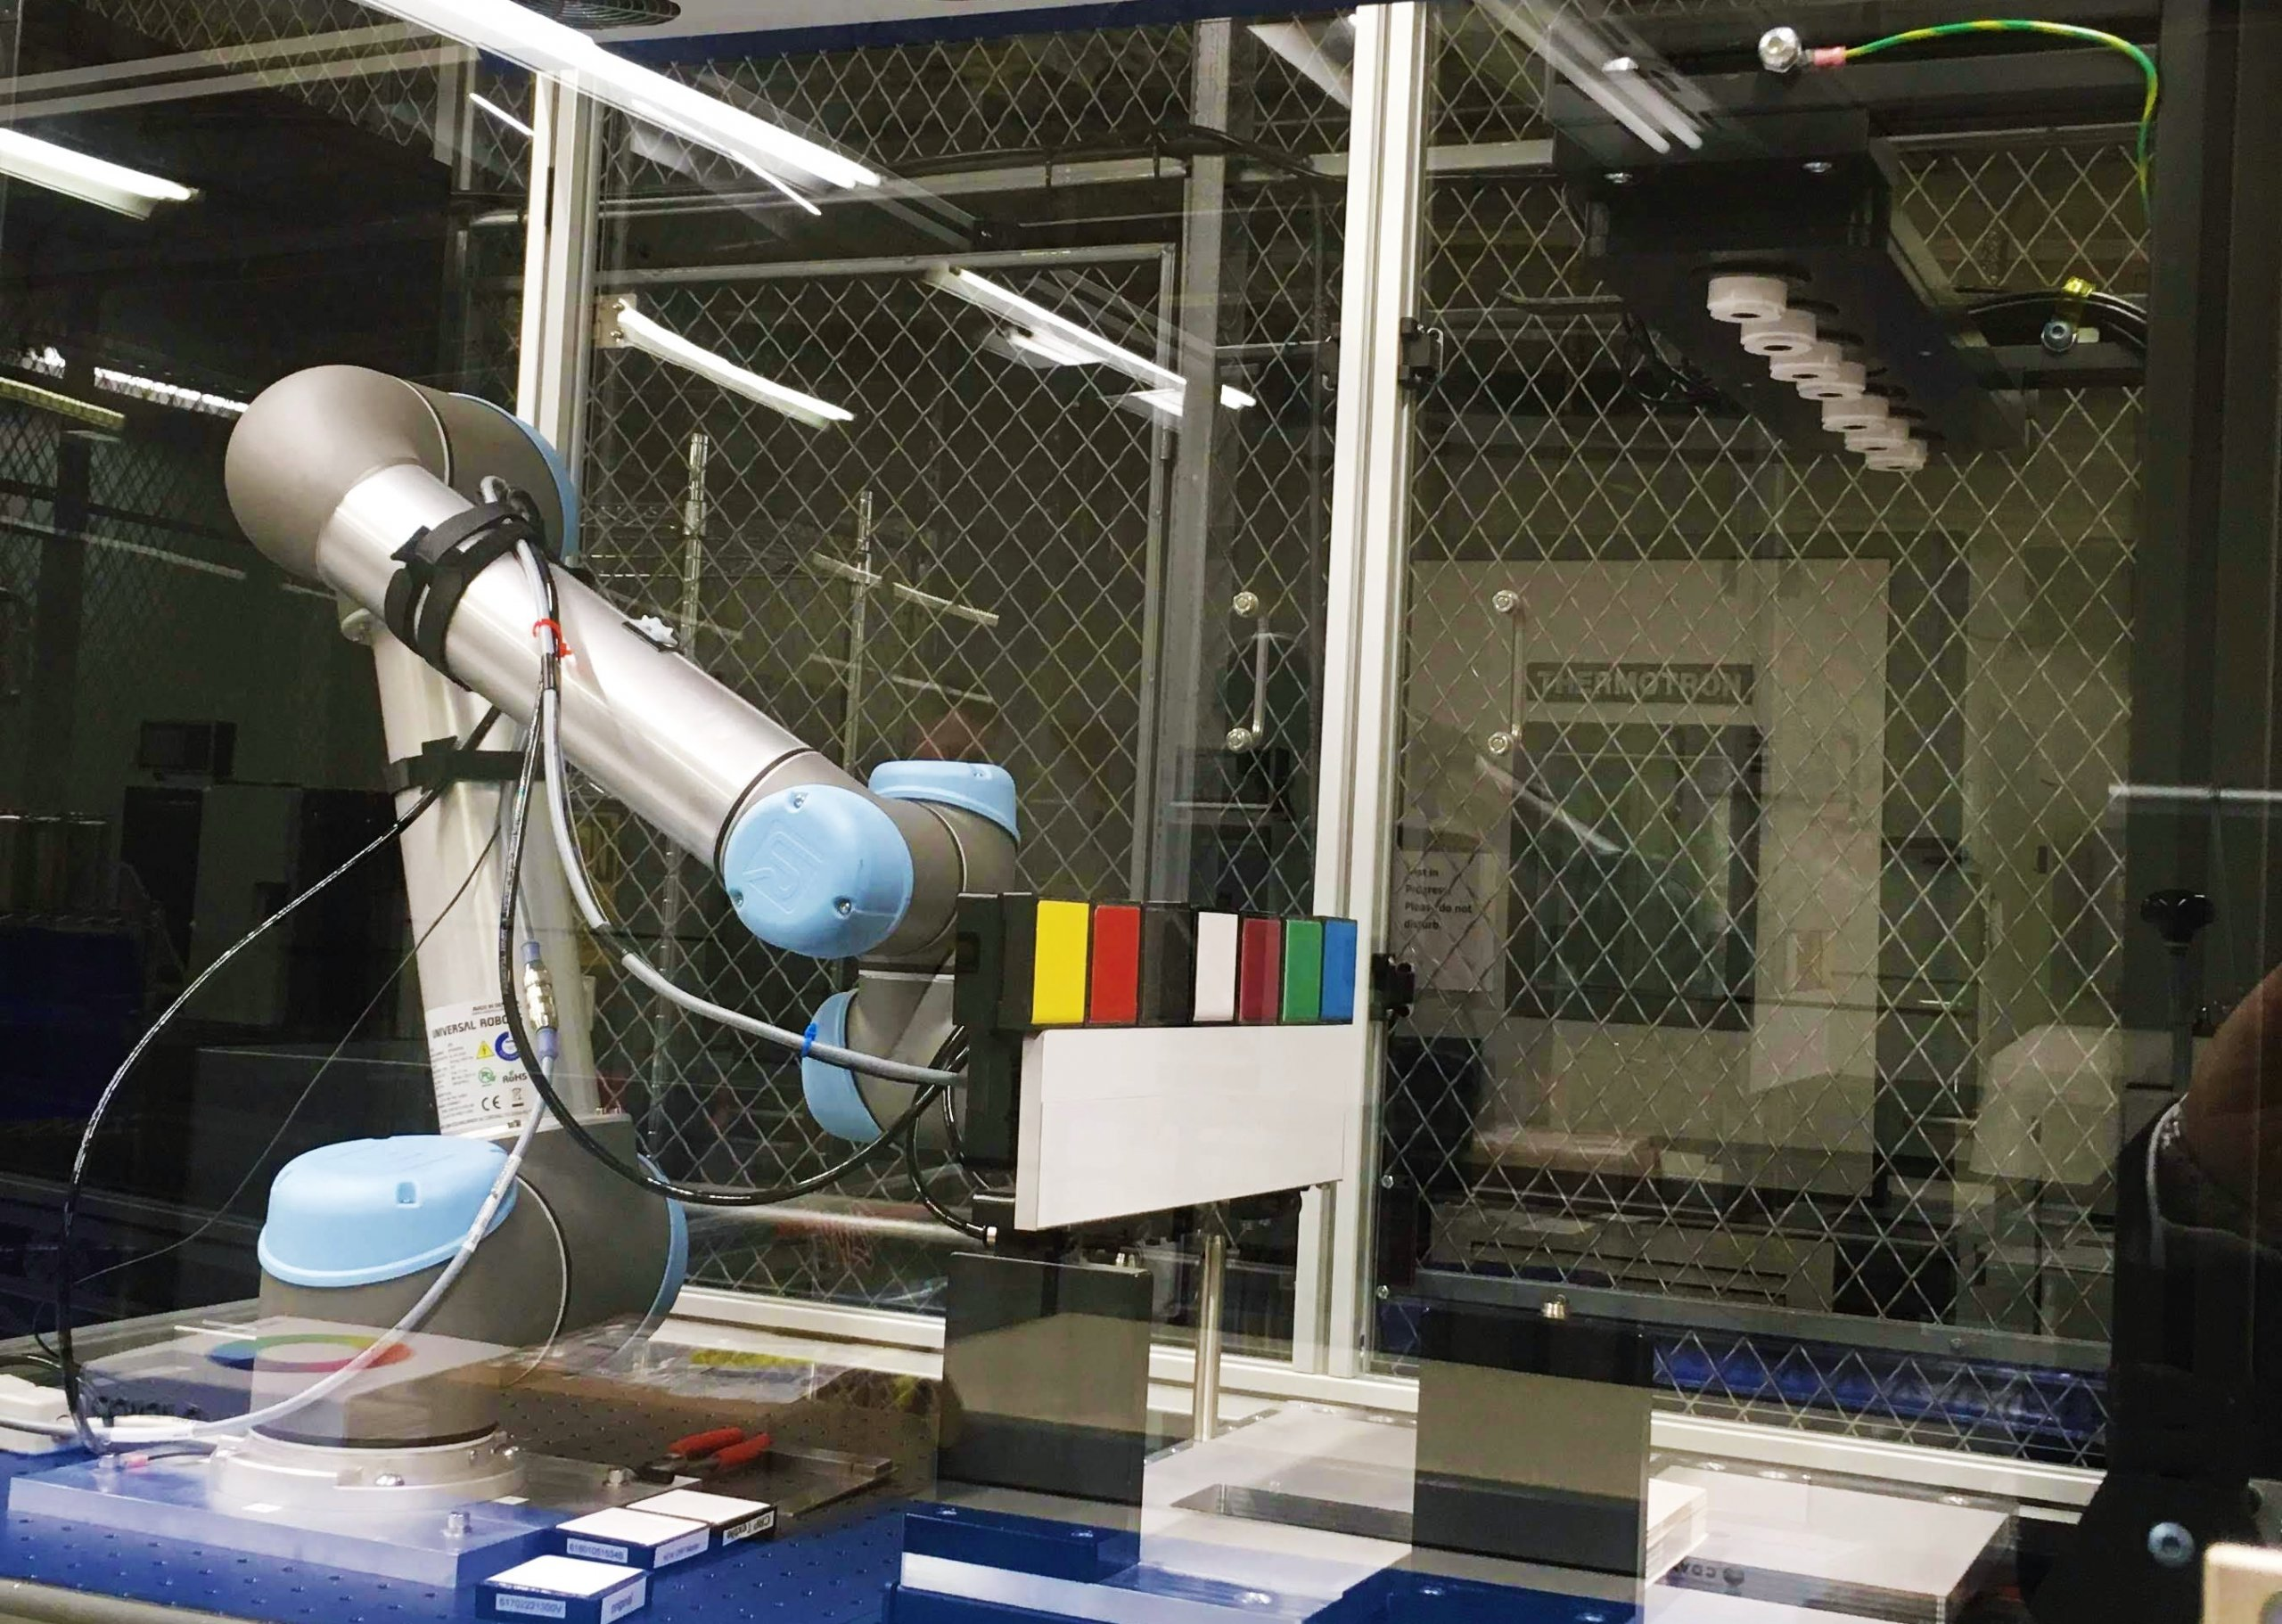 UR5 Collaborative Robot Arm with Custom Fixtures for Lab Use